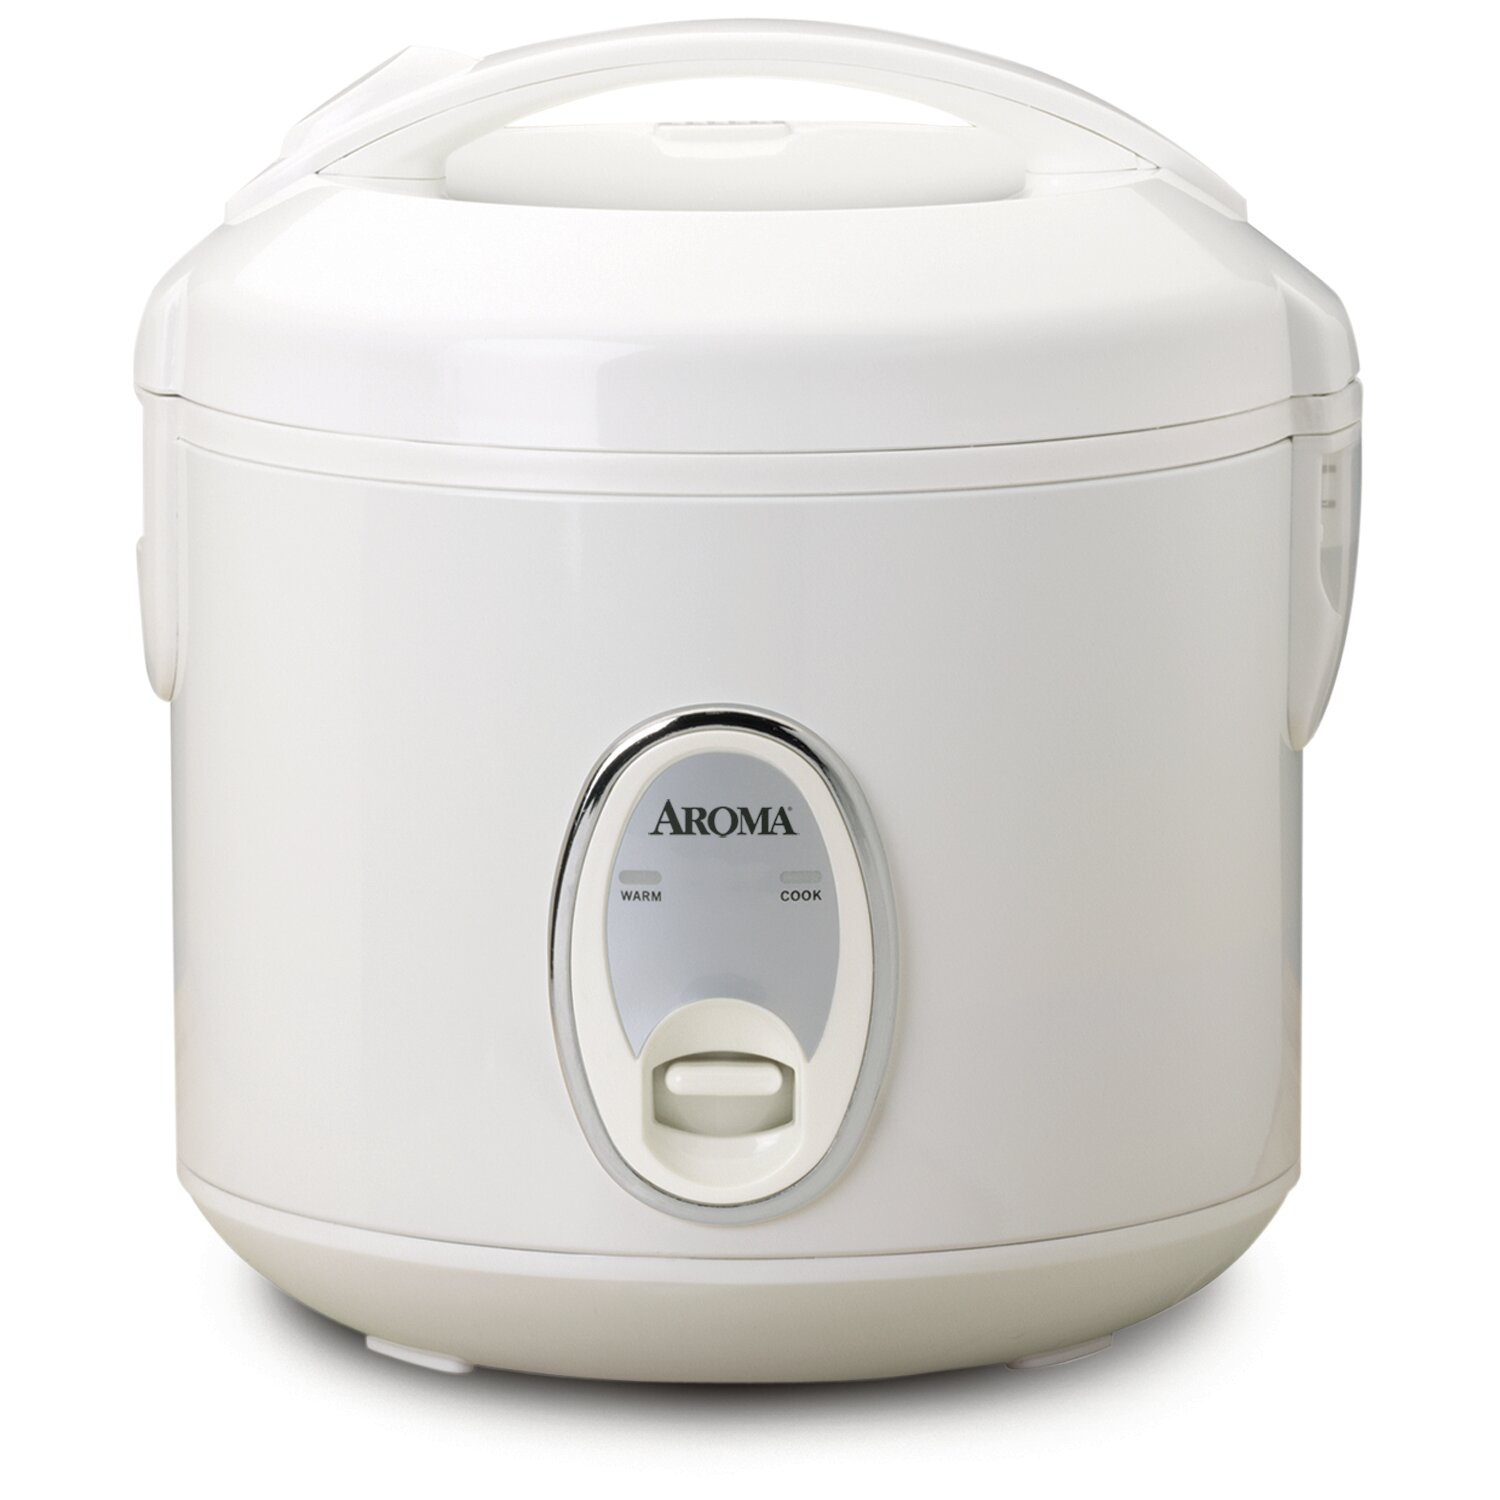 Rice Cooker 4-Cup Non-Stick Interior Stainless Finish with Tempered Glass Cover